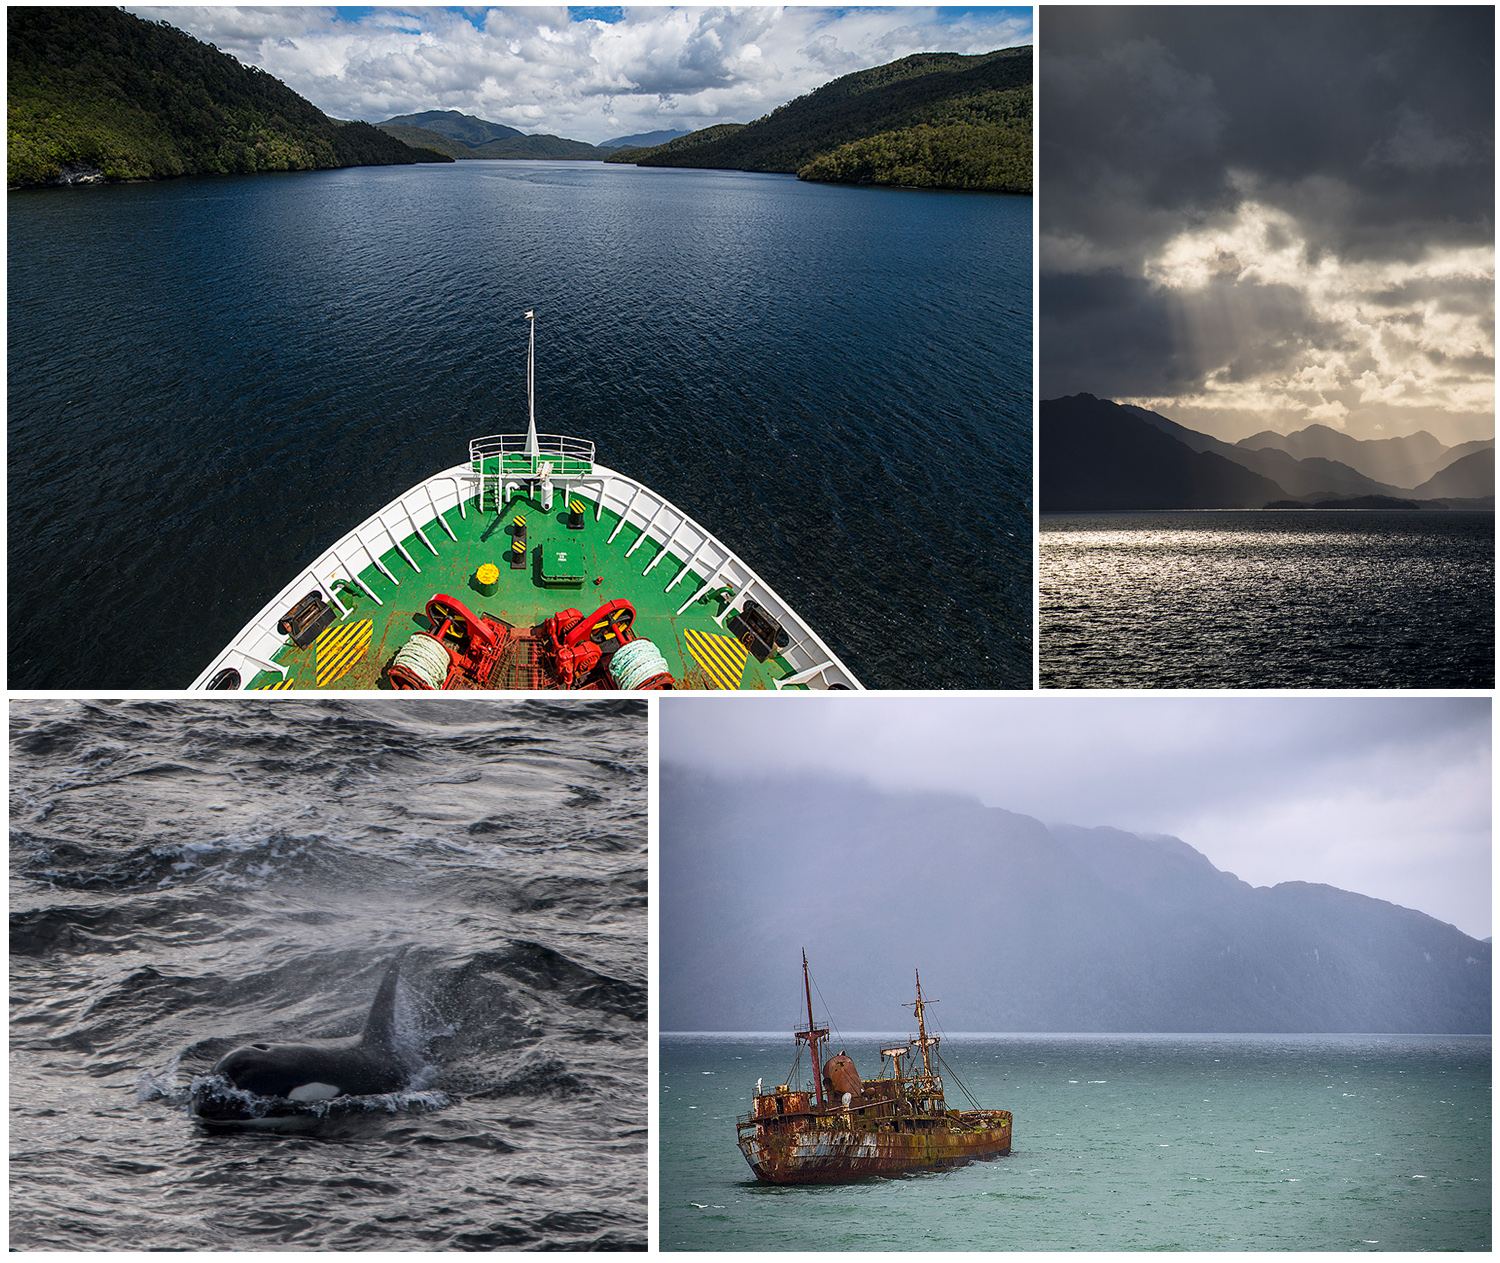 some impressions from our ferry ride with Navimag